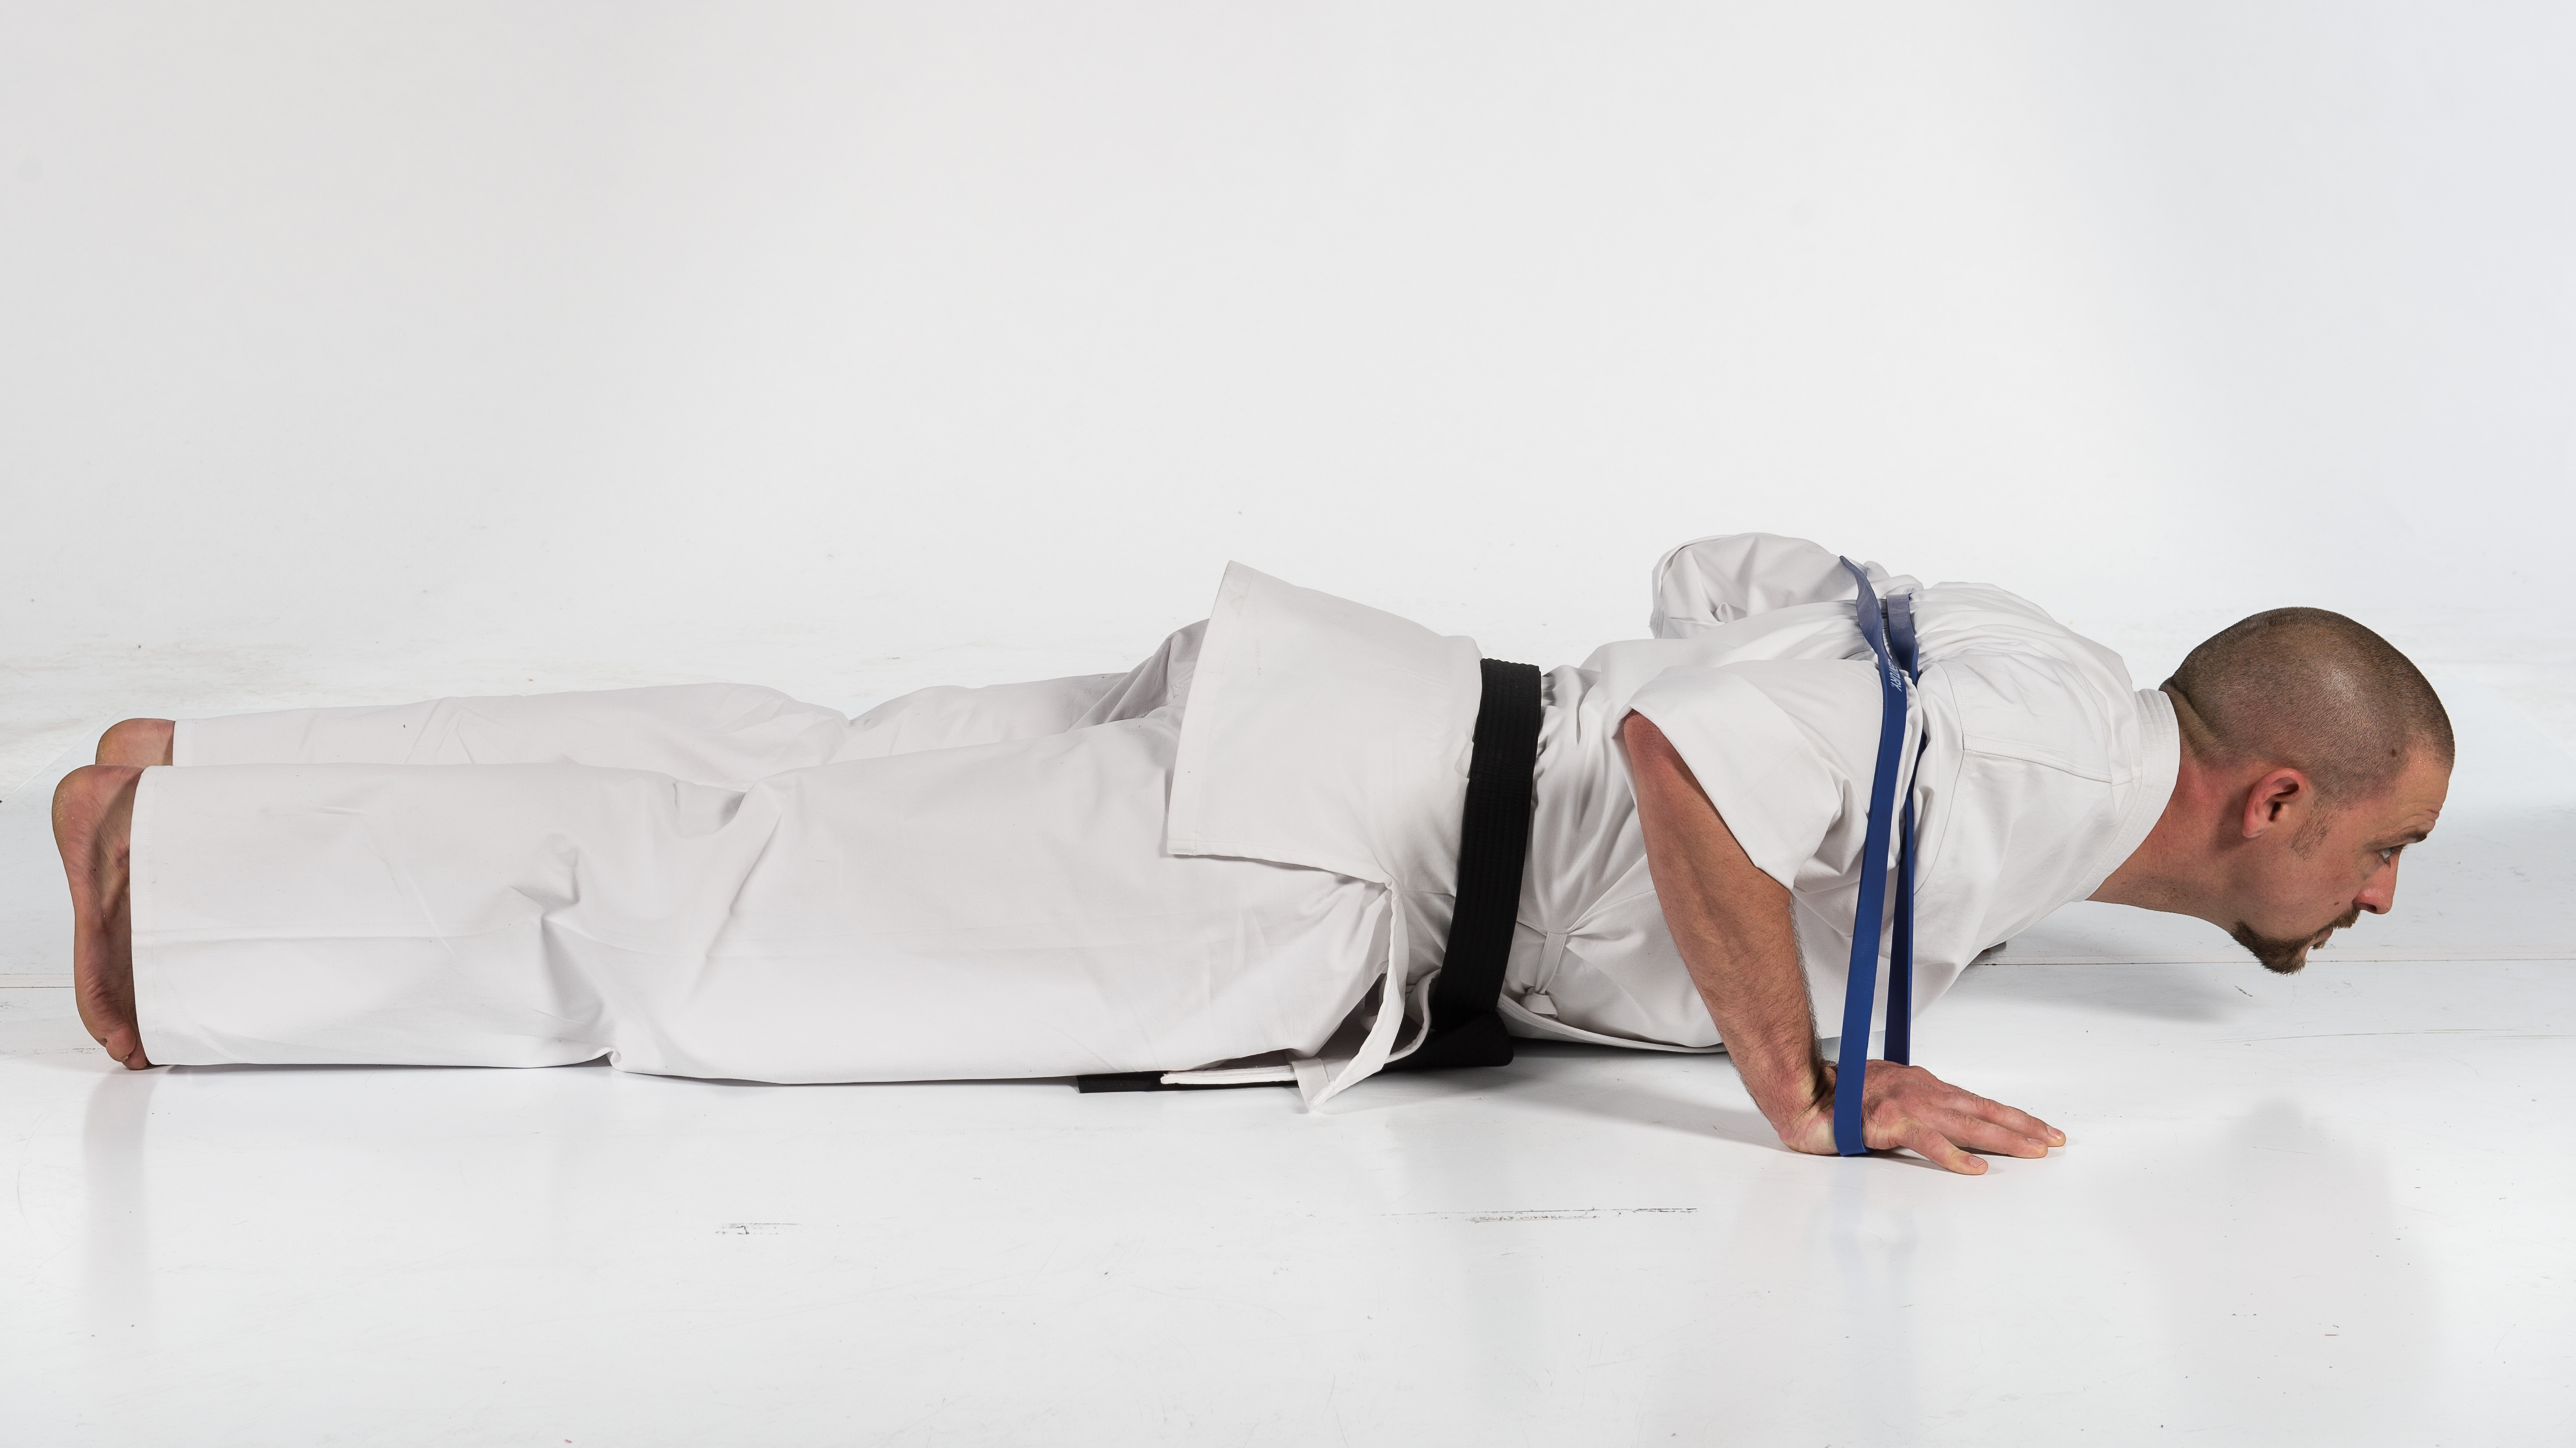 You don't need to be wearing a gi to do this exercise.